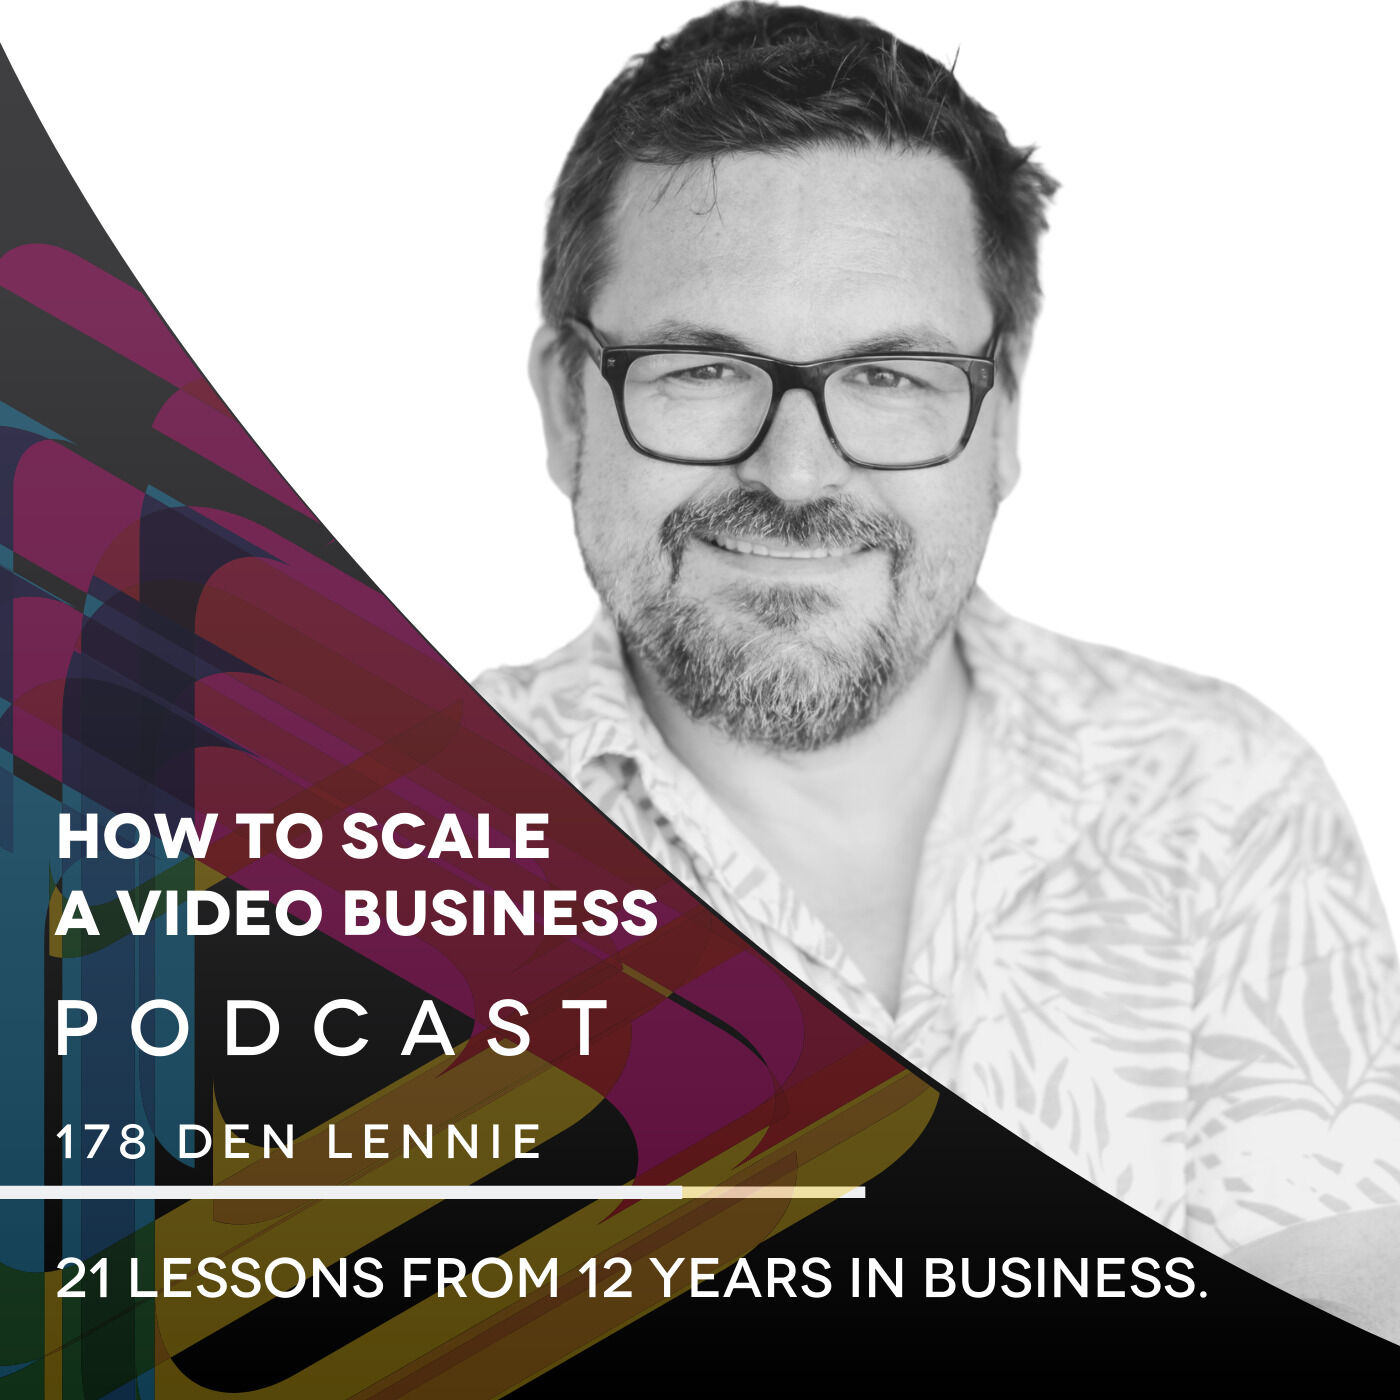 21 lessons from 12 years in business. EP #178 - Den Lennie